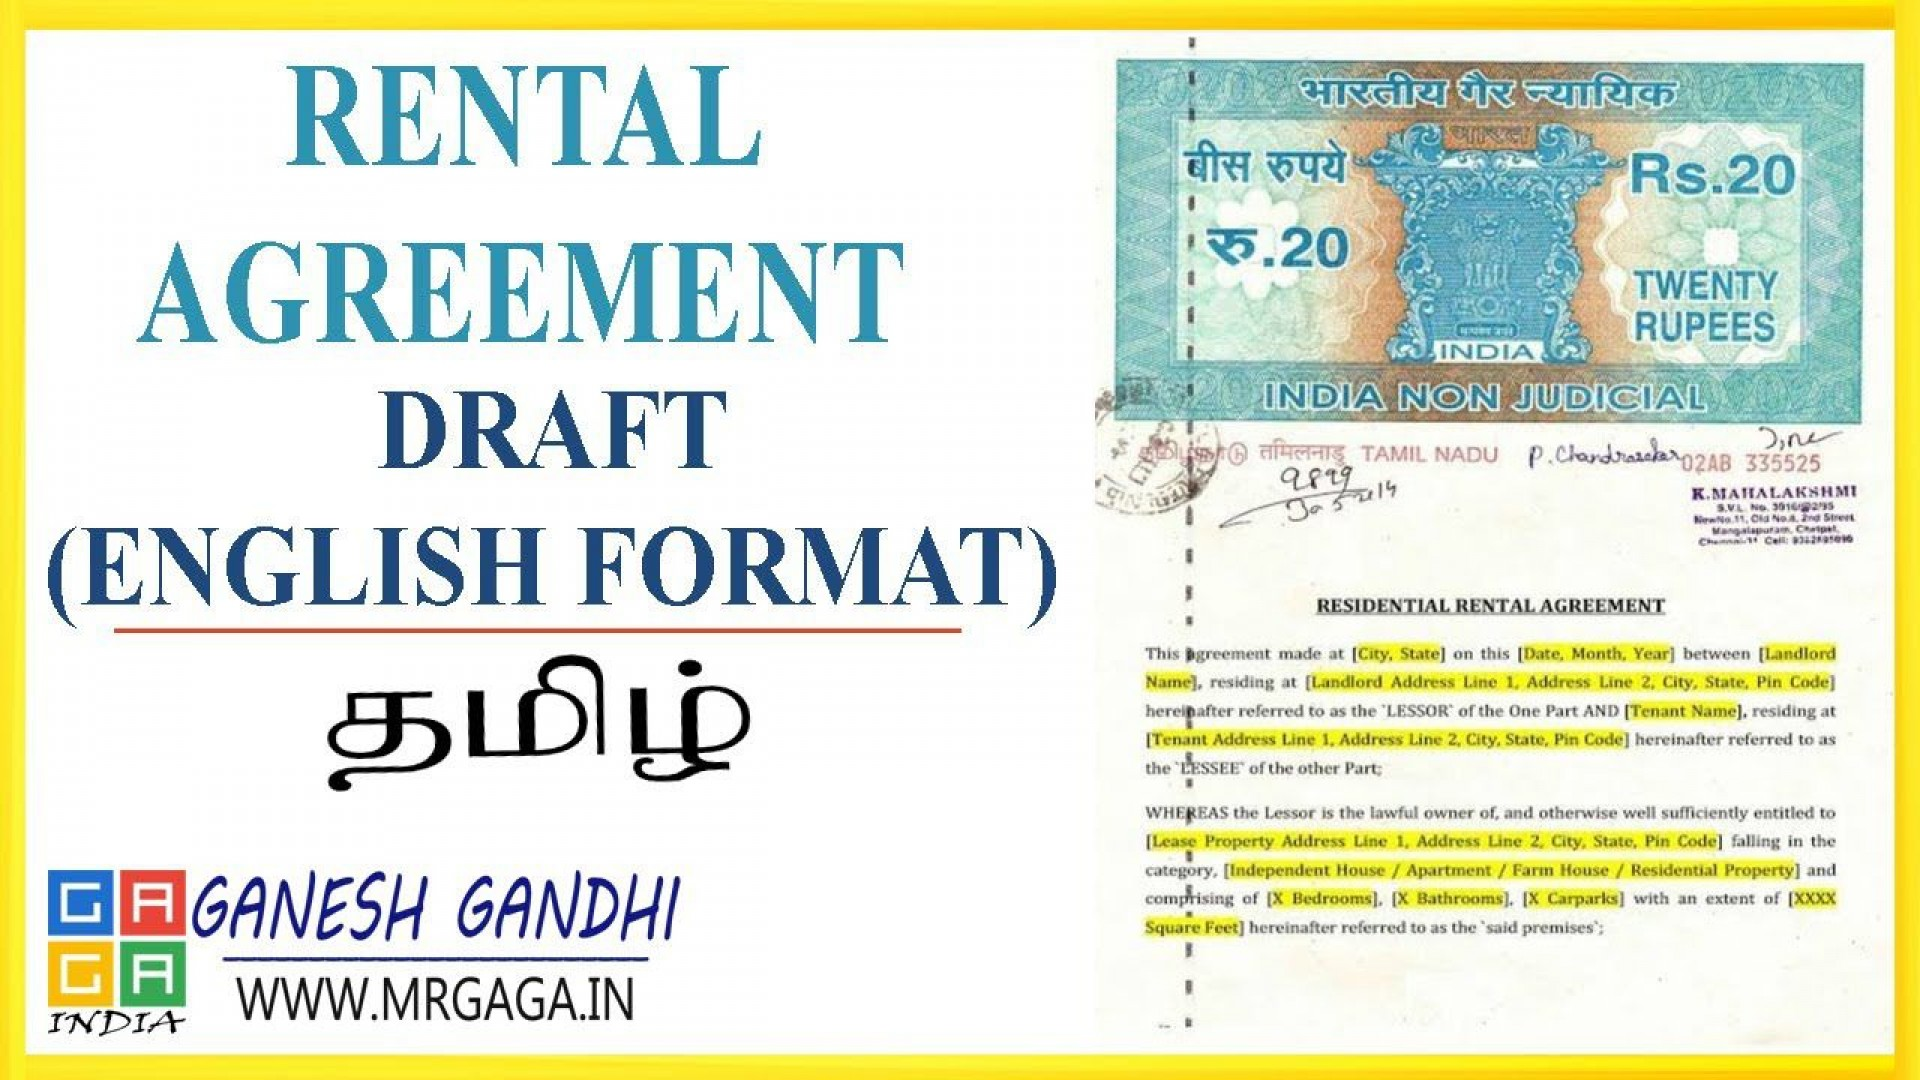 005 Amazing Renter Lease Agreement Form Inspiration  Rent Format In Tamil Florida Rental Printable1920